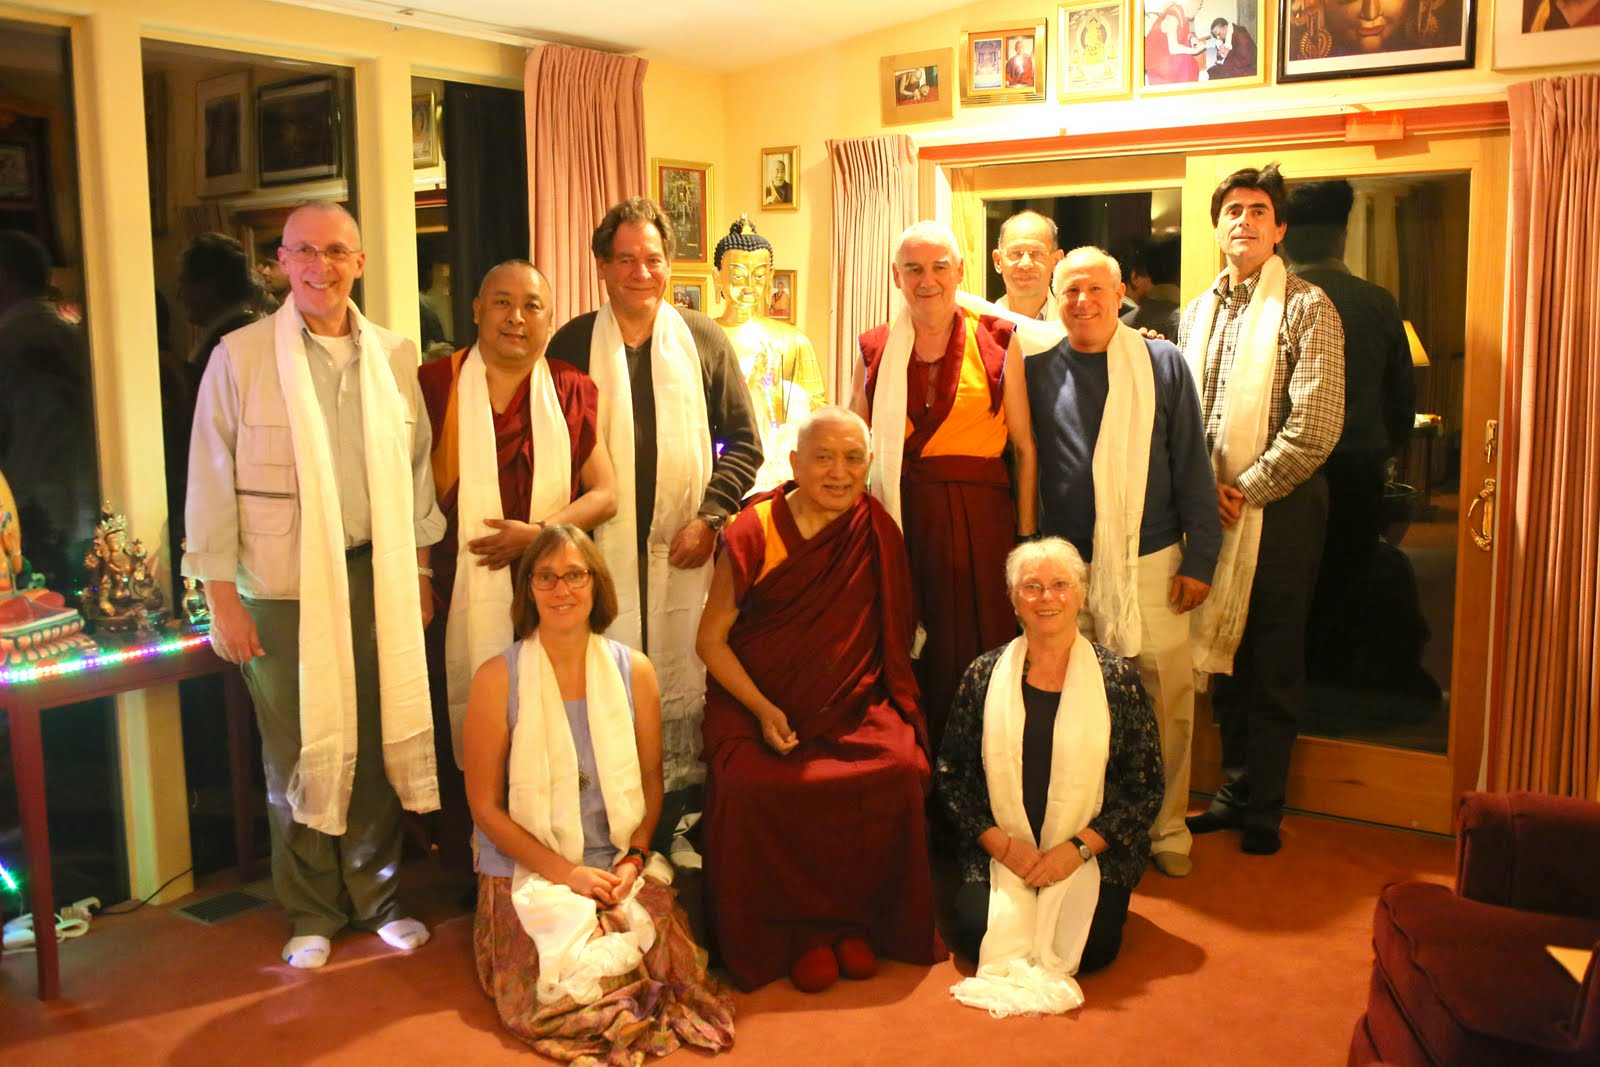 Rinpoche with members of the FPMT Board of Directors. Aptos, California. September 2013. Photo by Ven. Thubten Kunsang.